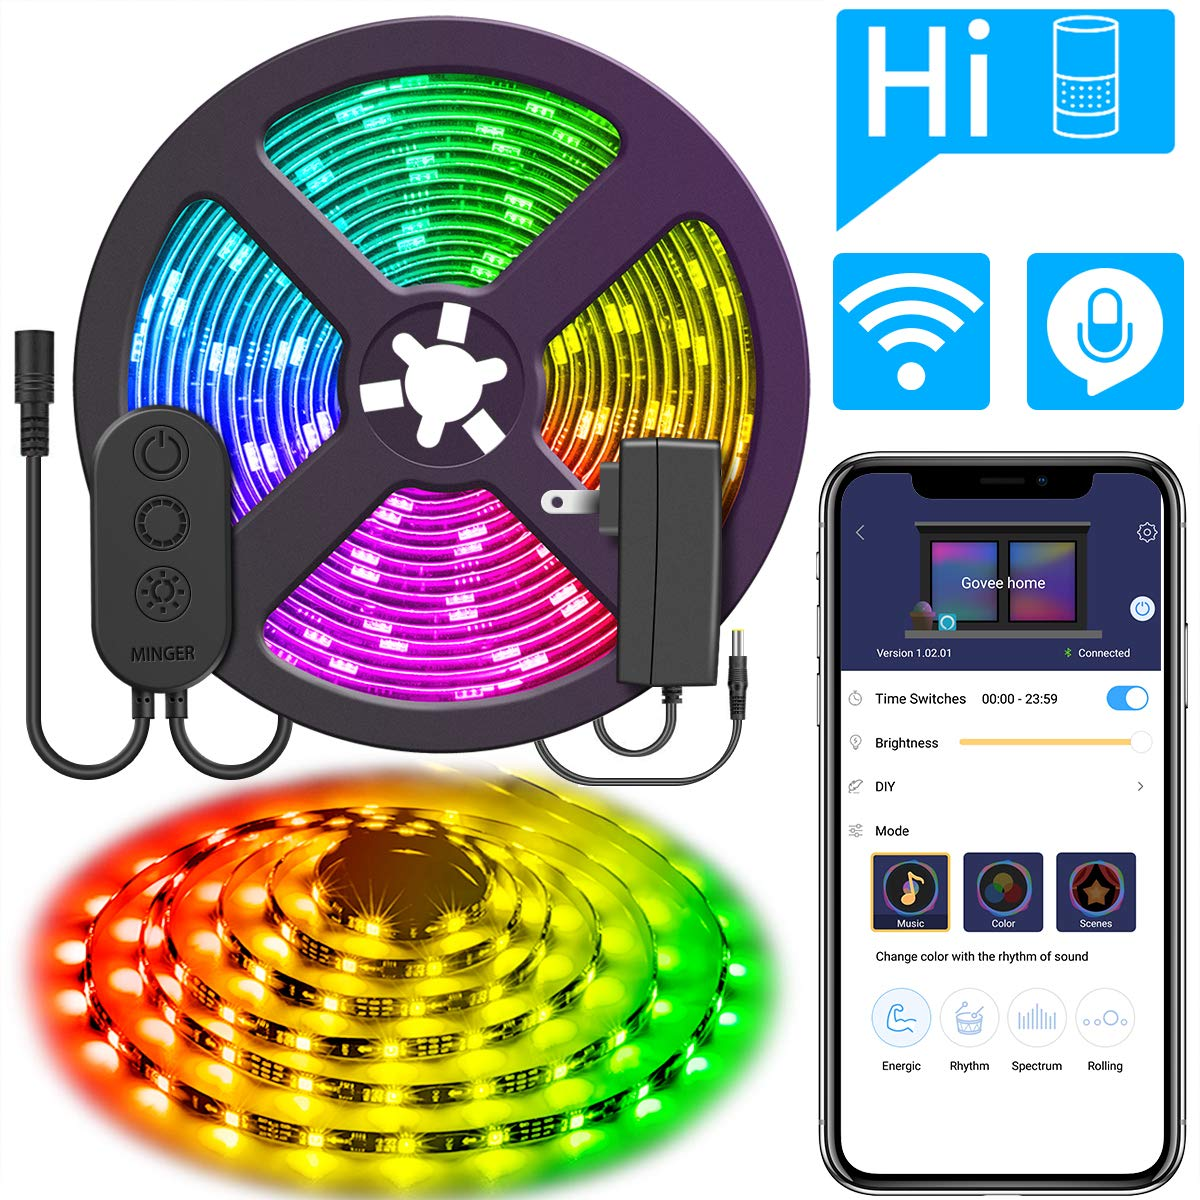 DreamColor 16.4ft LED Strip Lights, MINGER WiFi Wireless Smart Phone Controlled Light Strip 5050 LED Lights Sync to Music, Work with Amazon Alexa, Google Assistant Android iOS (Not Support 5G WiFi) by Govee (Image #1)